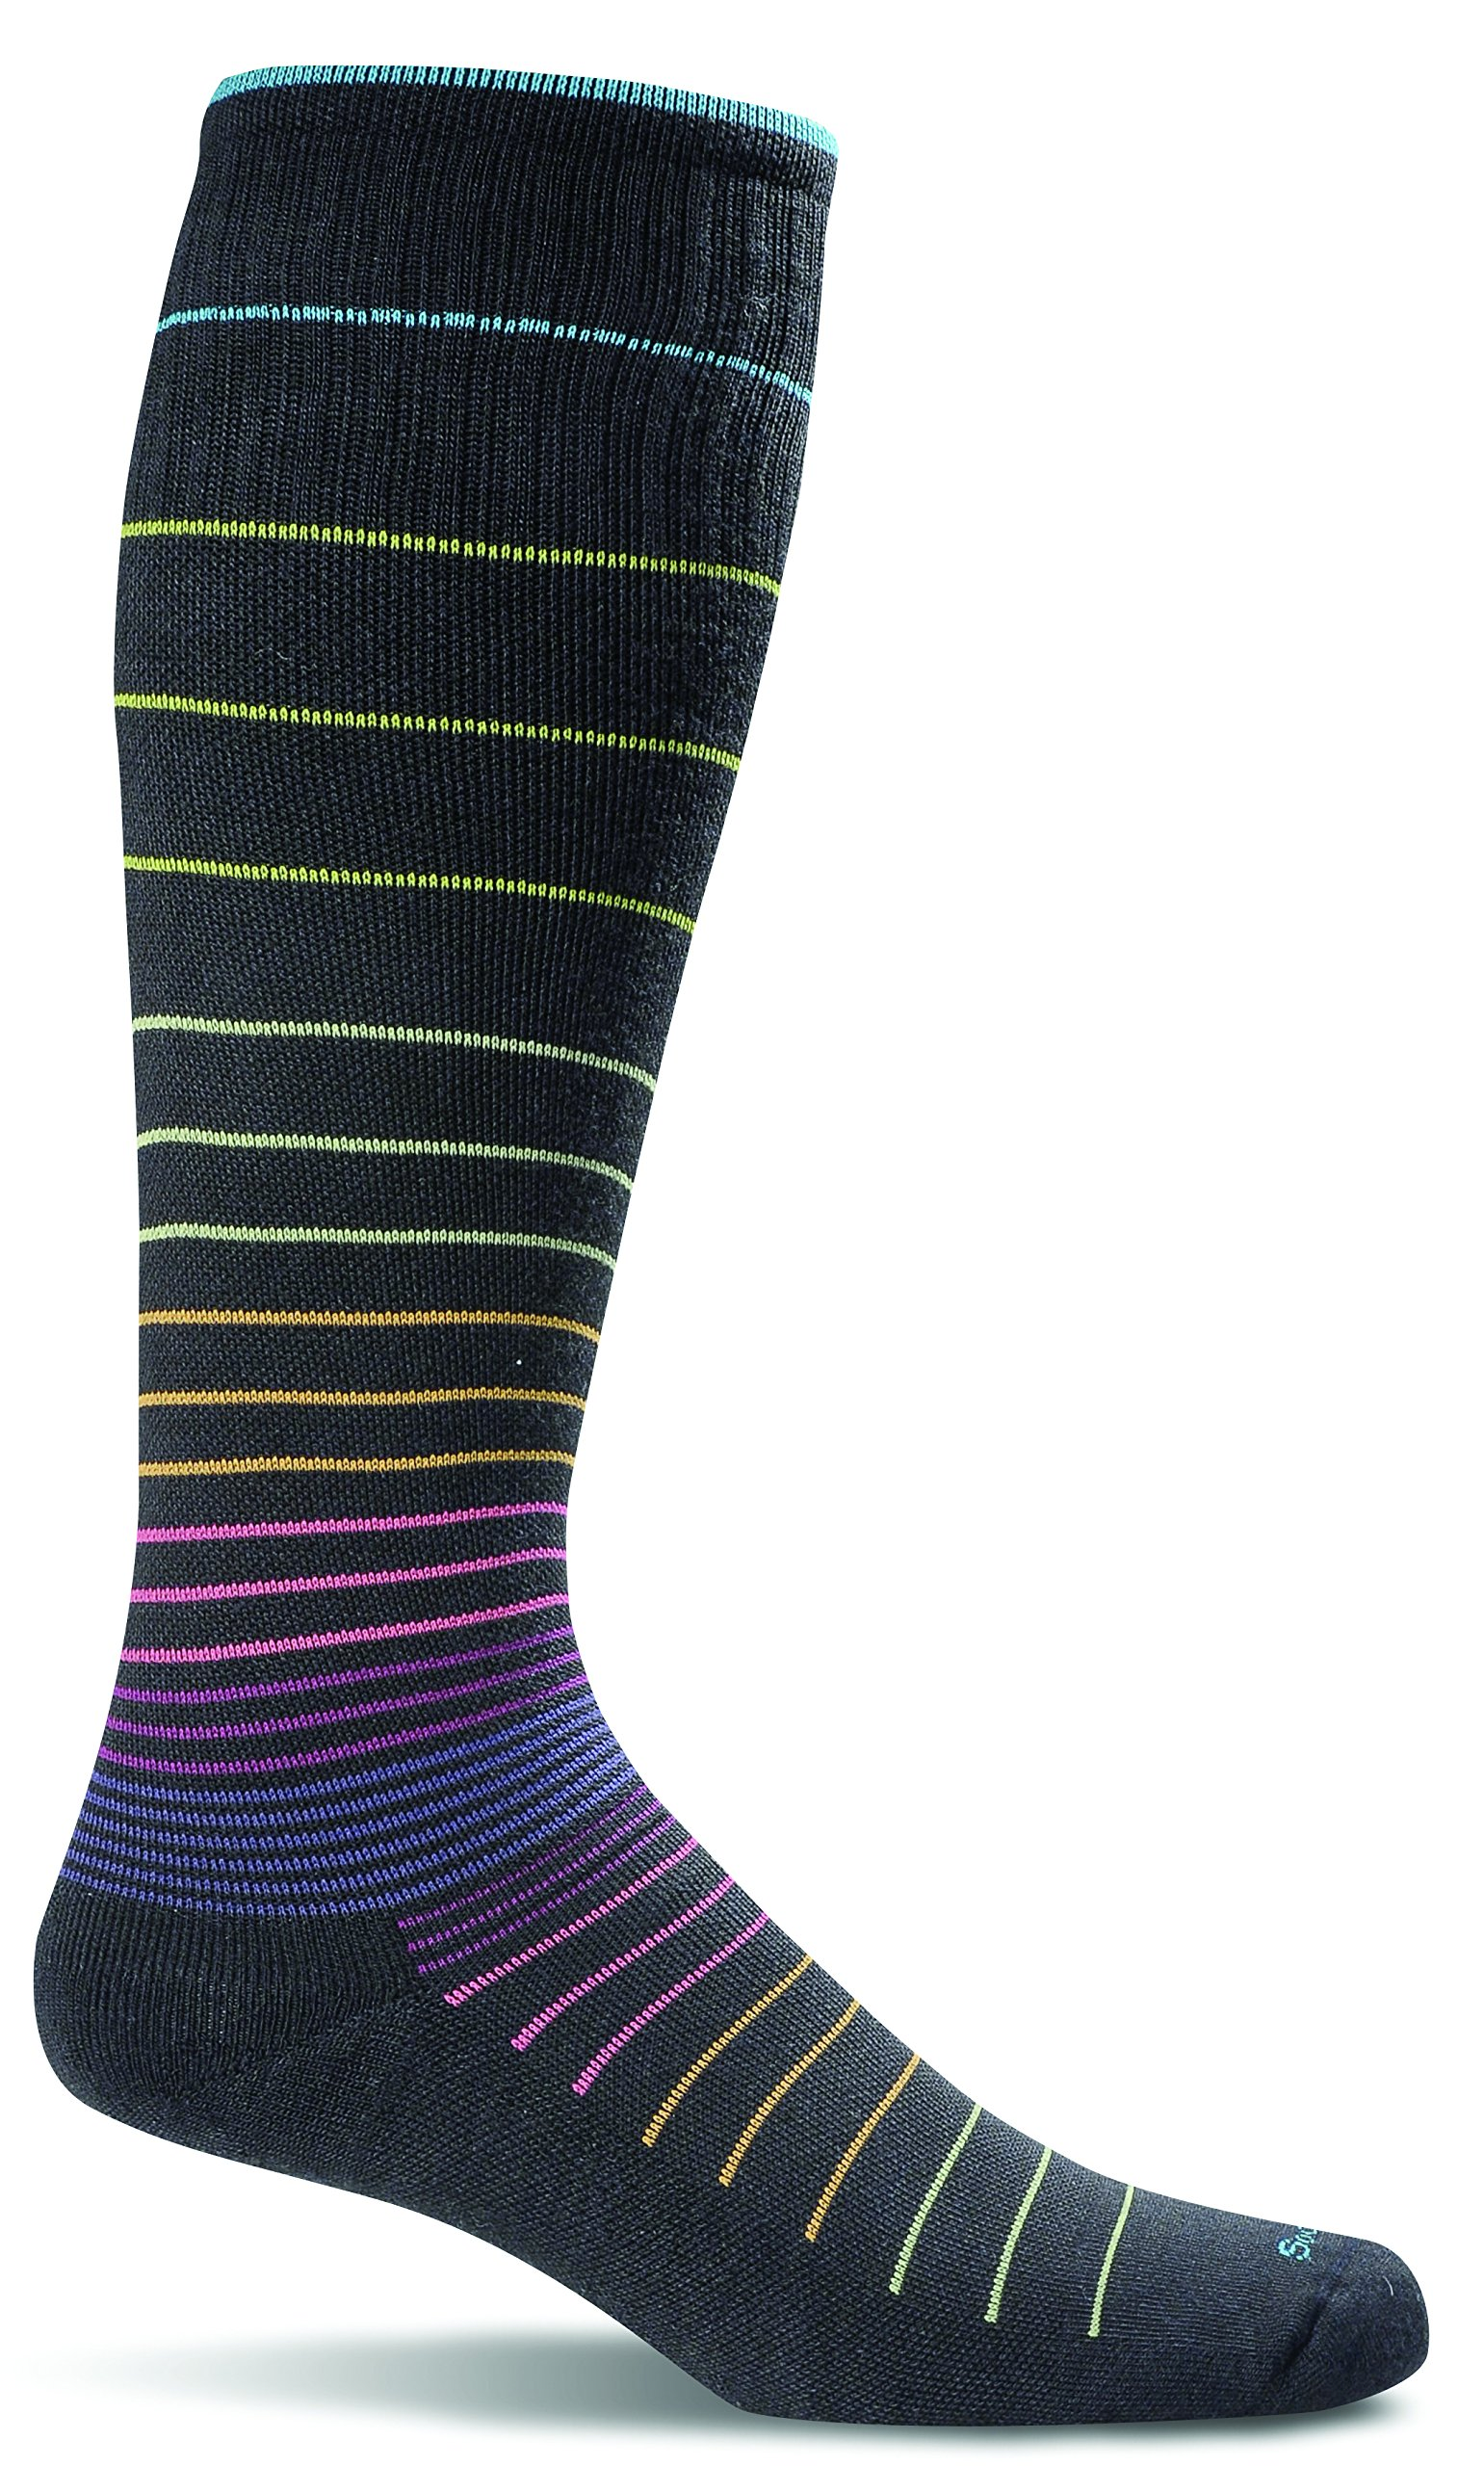 Sockwell Women's Circulator Graduated Compression Socks-Ideal for-Travel-Sports-Nurses-Reduces Swelling, Medium/Large(8-11), Black Stripe